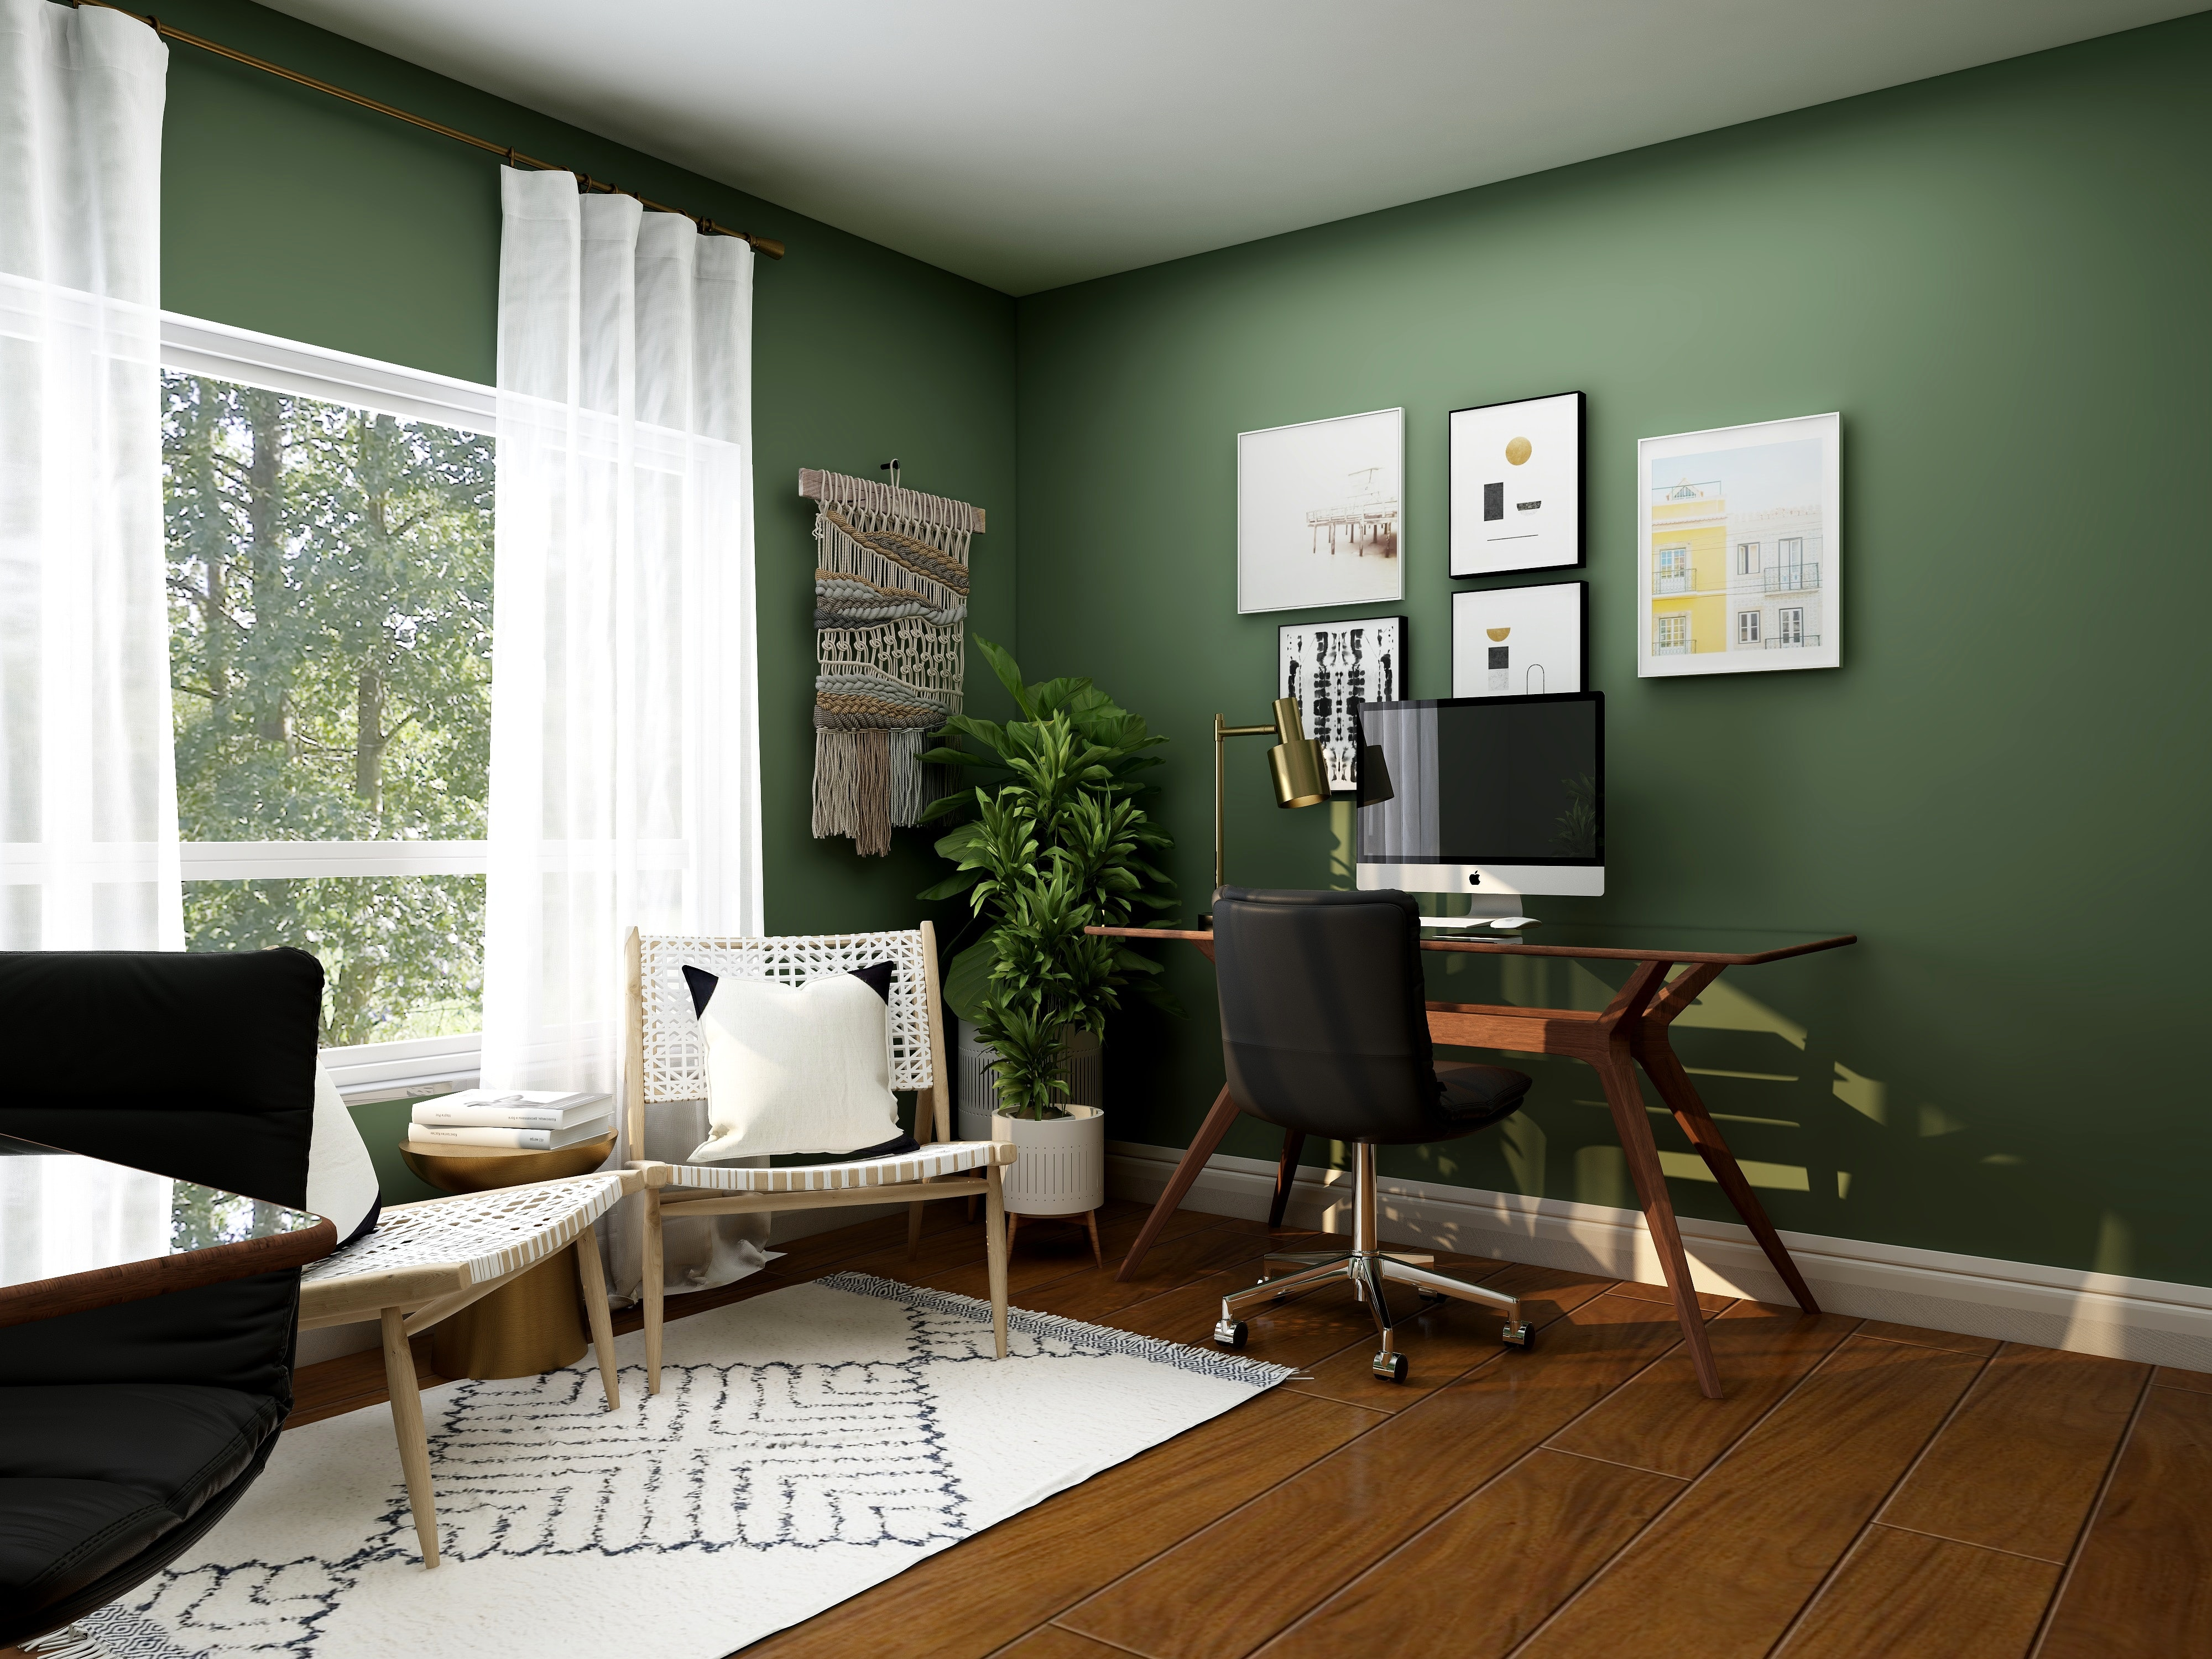 An office with green walls